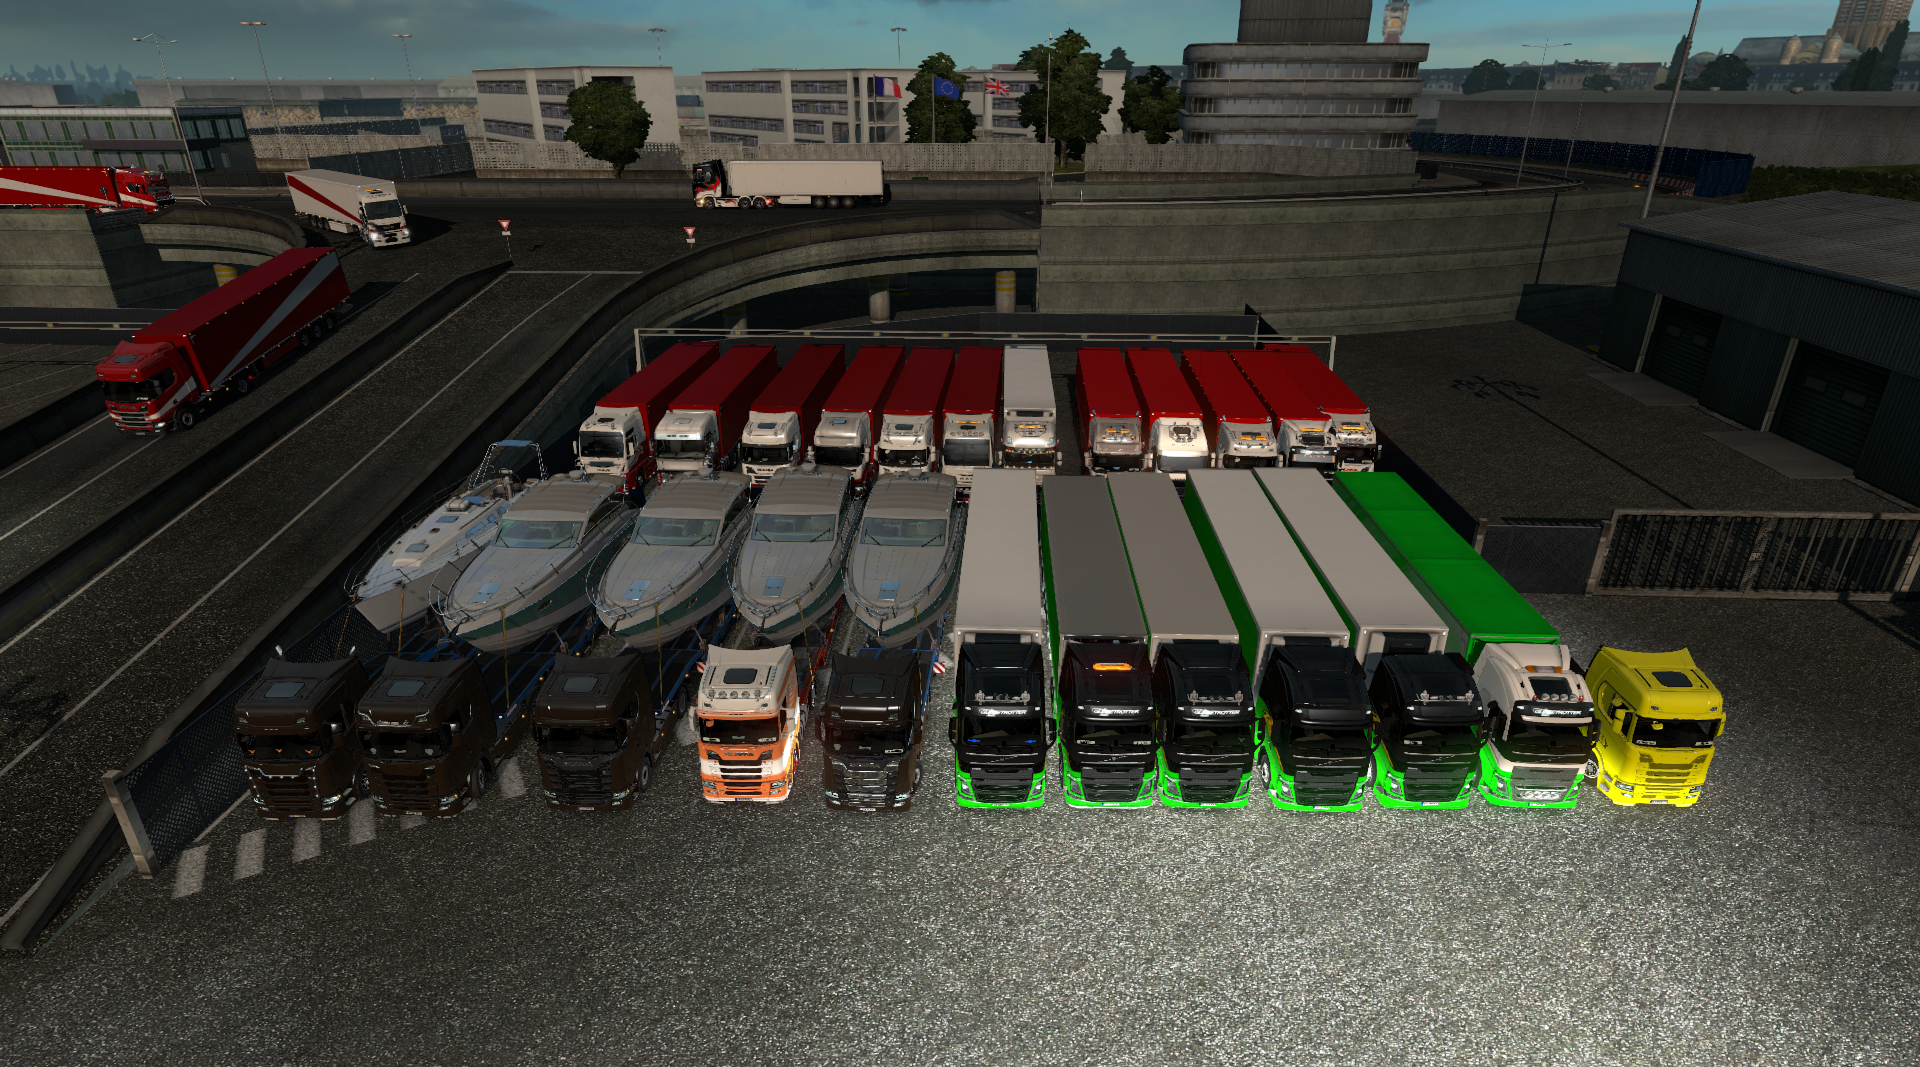 ets2_20190406_202822_00.png